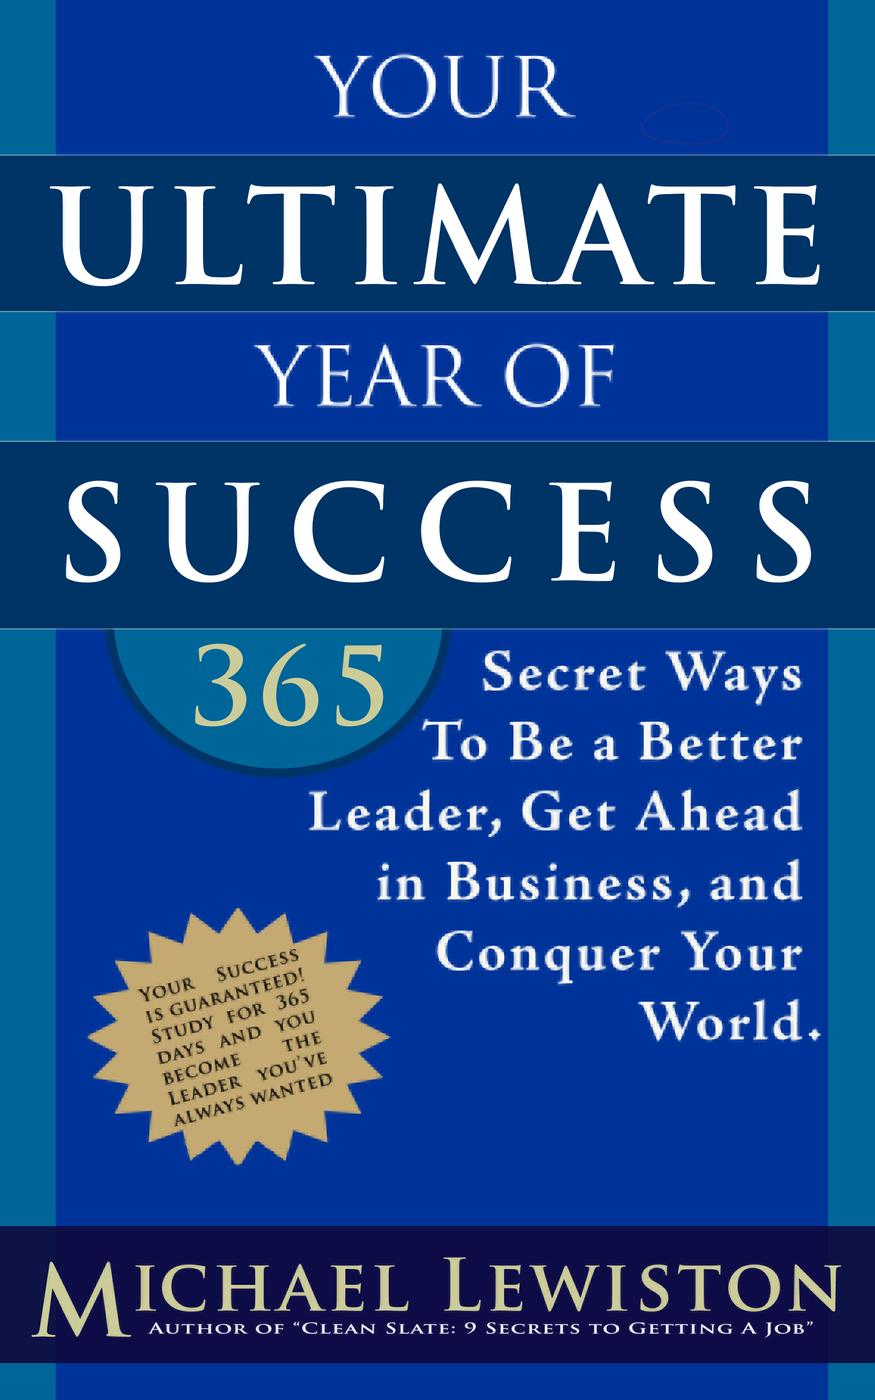 Your Ultimate Year of Success: 365 Secret Ways To Be A Better Leader, Get Ahead in Business, and Con